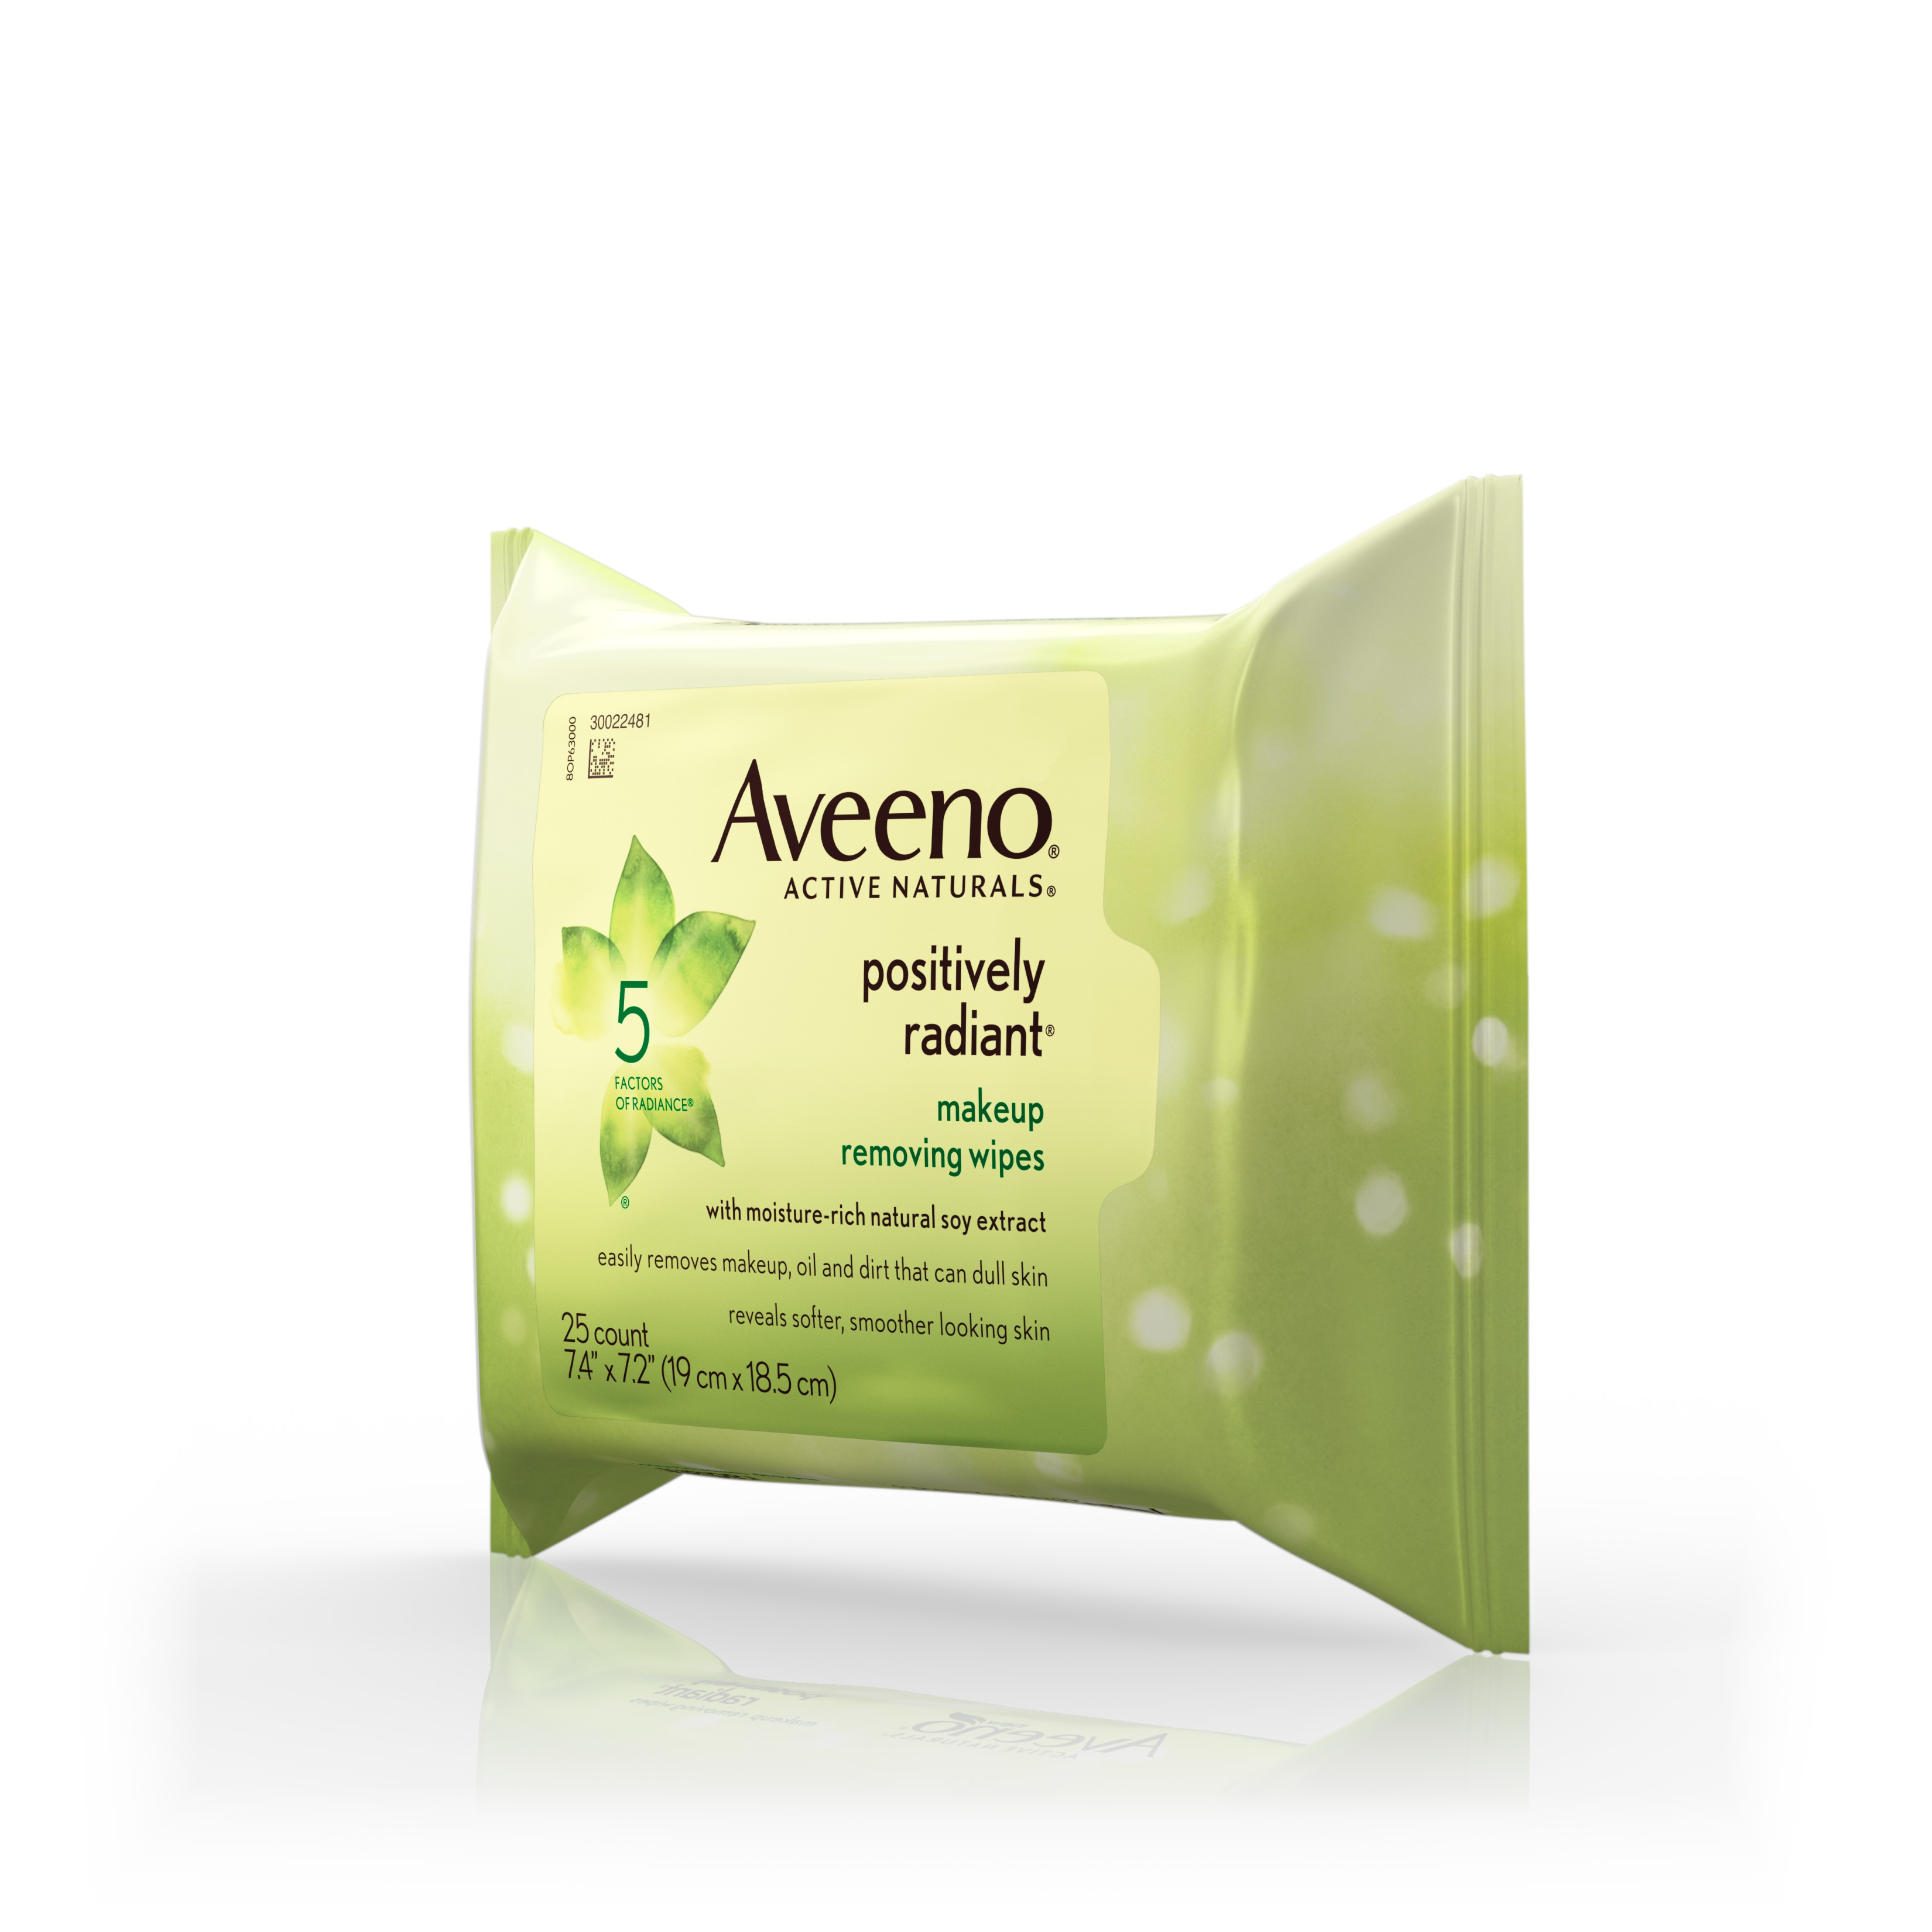 Aveeno makeup remover wipes coupons